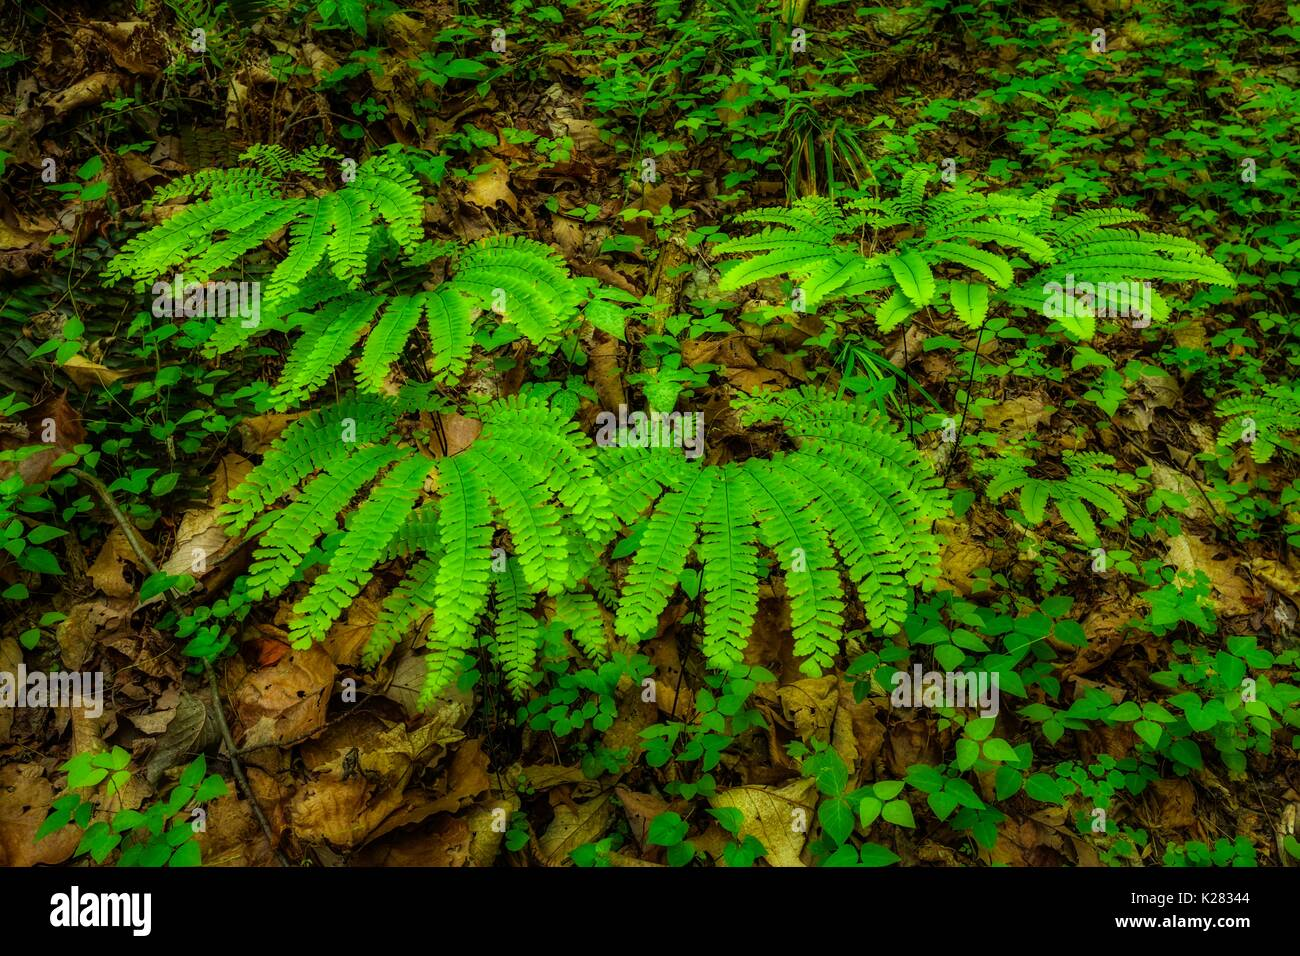 Ferns  (Orton Effect) on Meigs Creek Trail, Great Smoky Mountains National Park, TN - Stock Image